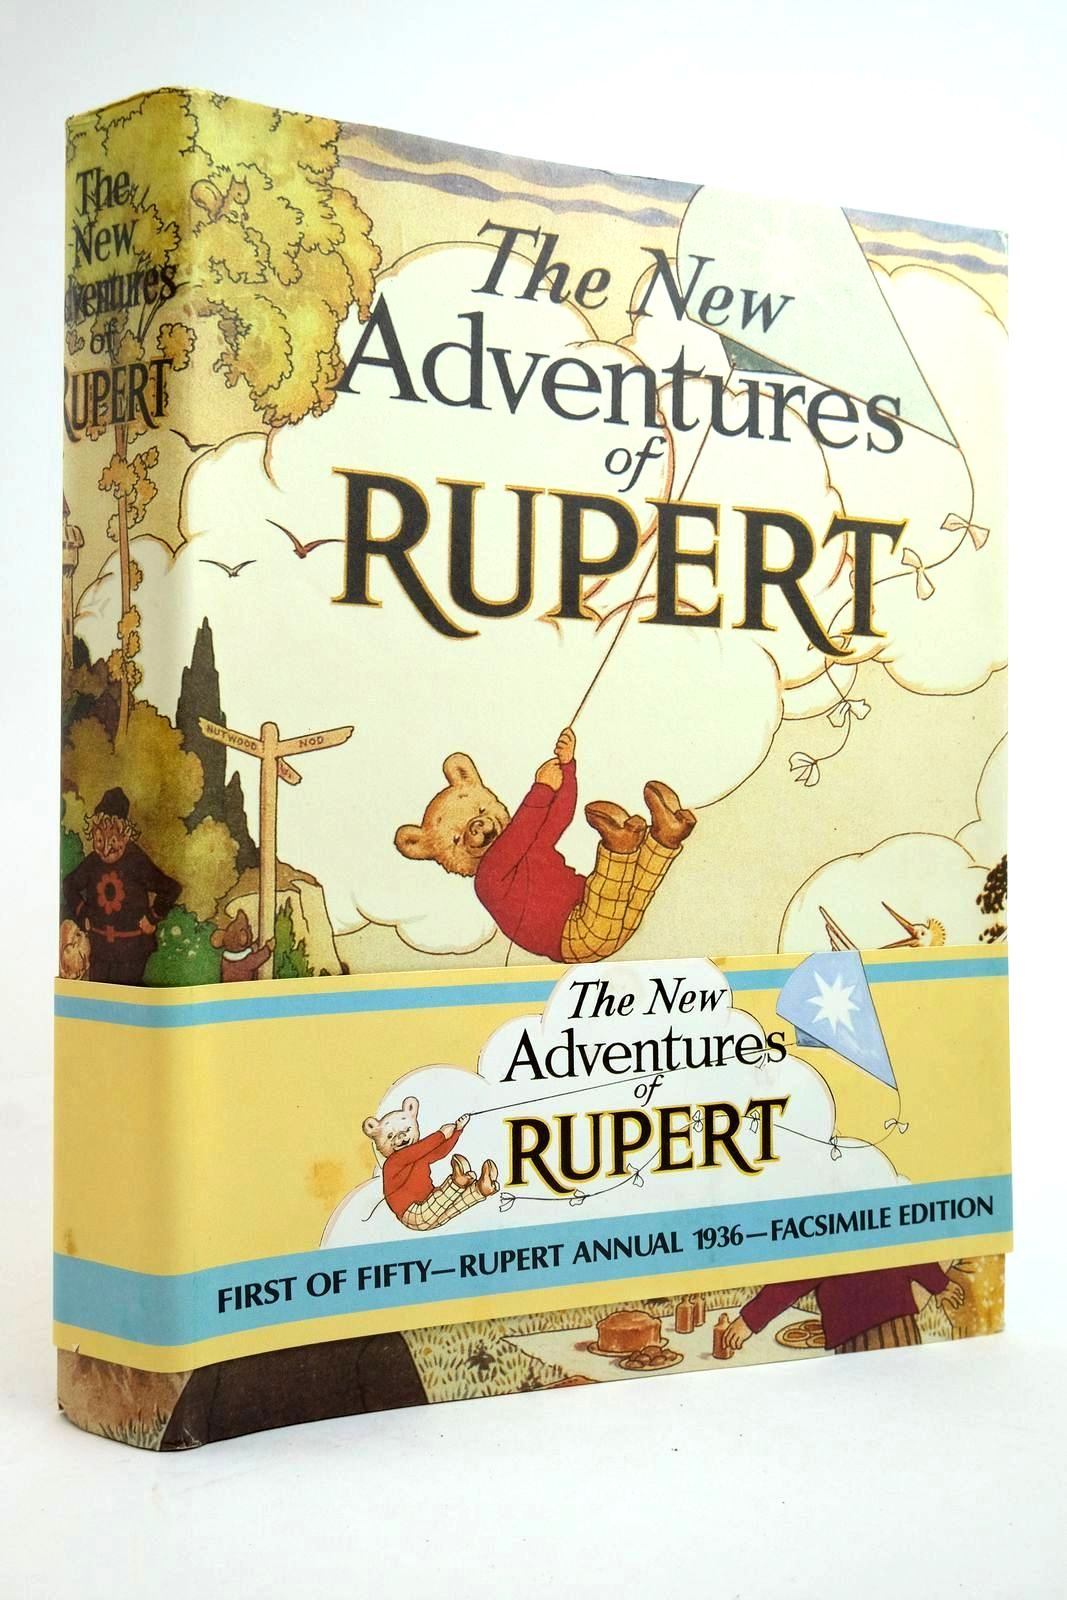 Photo of RUPERT ANNUAL 1936 (FACSIMILE) - THE NEW ADVENTURES OF RUPERT- Stock Number: 2135417